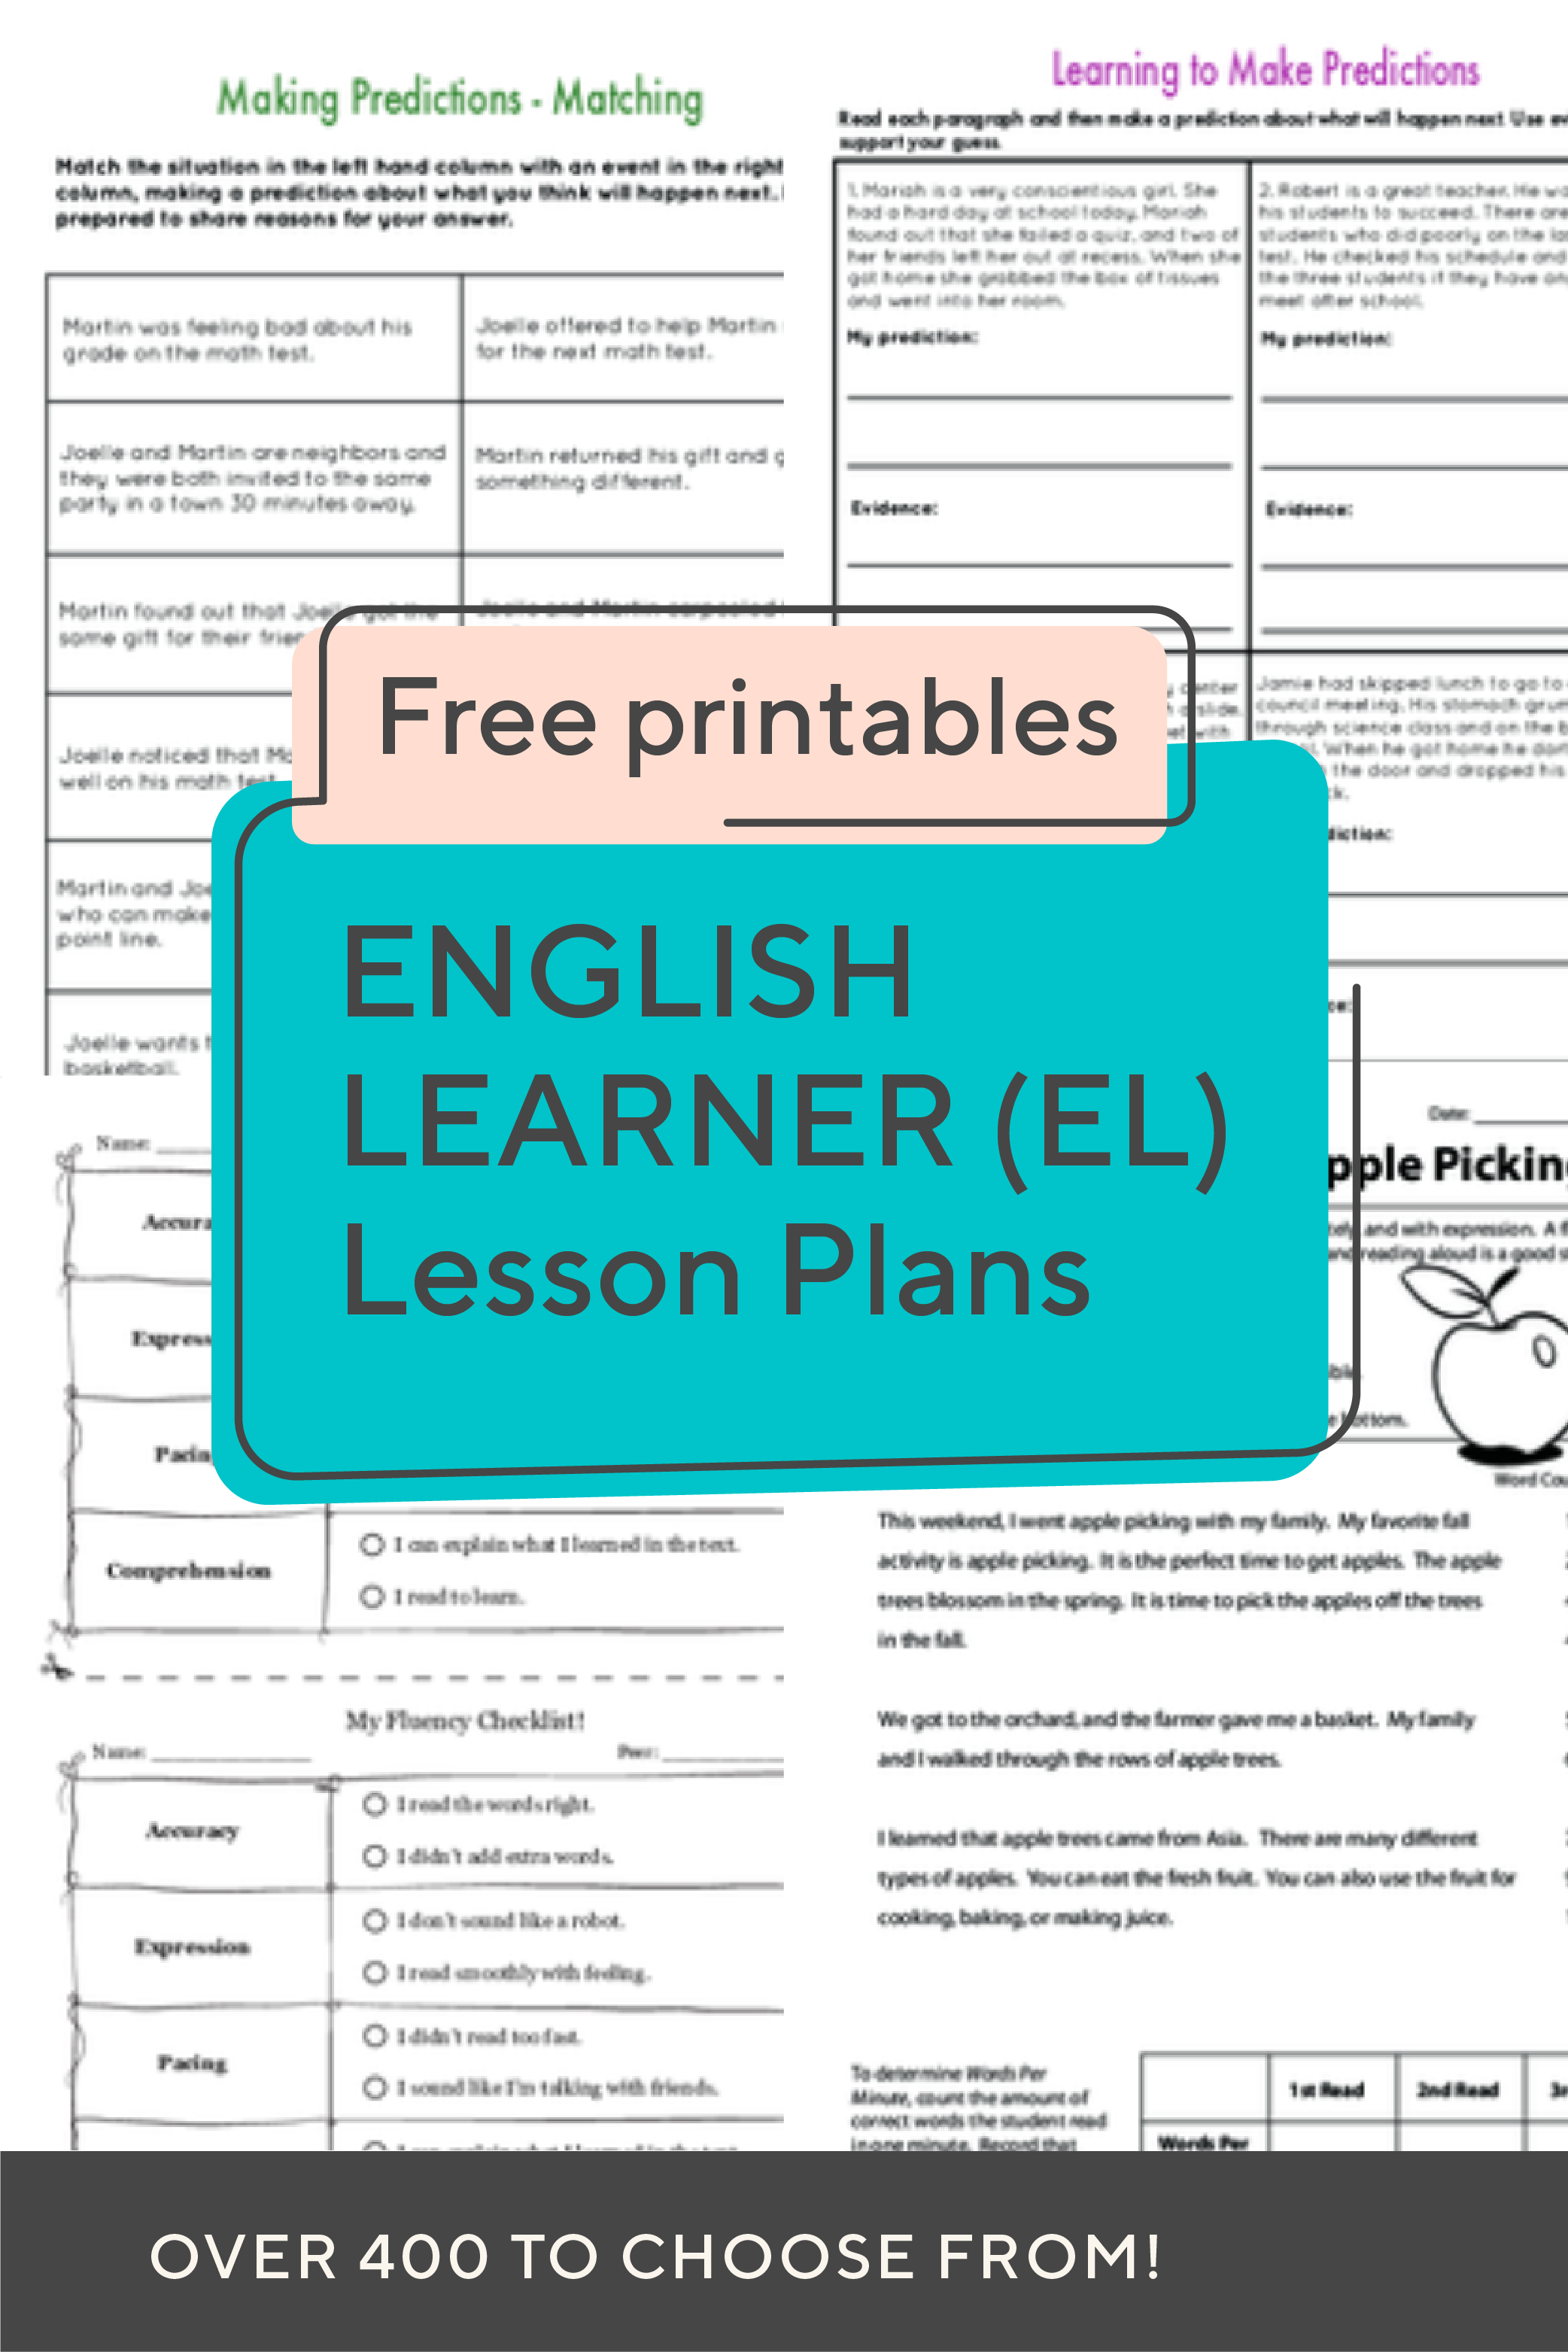 English Learner El Lesson Plans Access More Than 400 Lesson Plans For Preschool Through Ell Lesson Plans English Learners Activities Esl Teaching Resources [ 3126 x 2084 Pixel ]